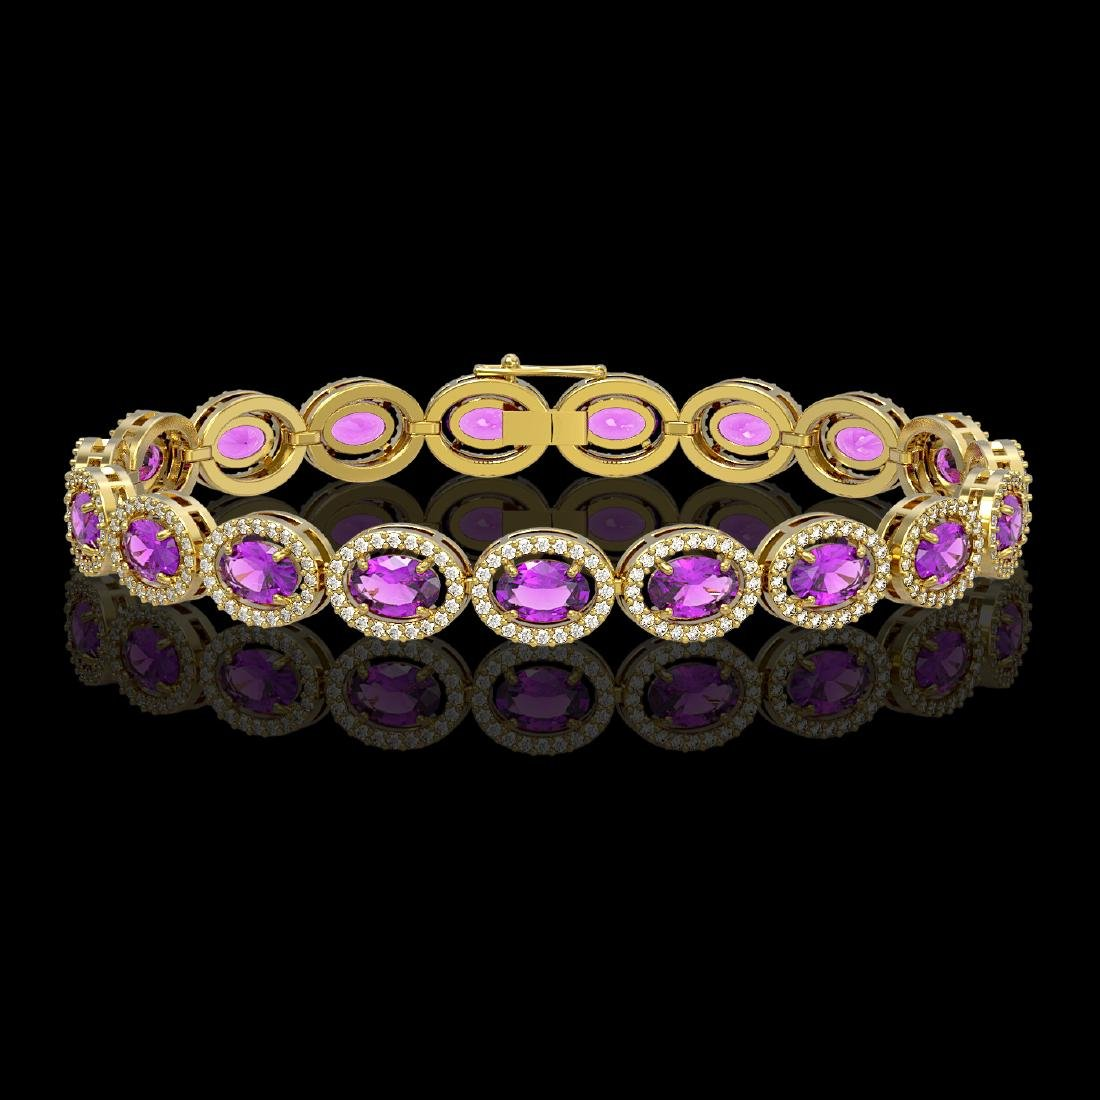 13.11 CTW Amethyst & Diamond Halo Bracelet 10K Yellow